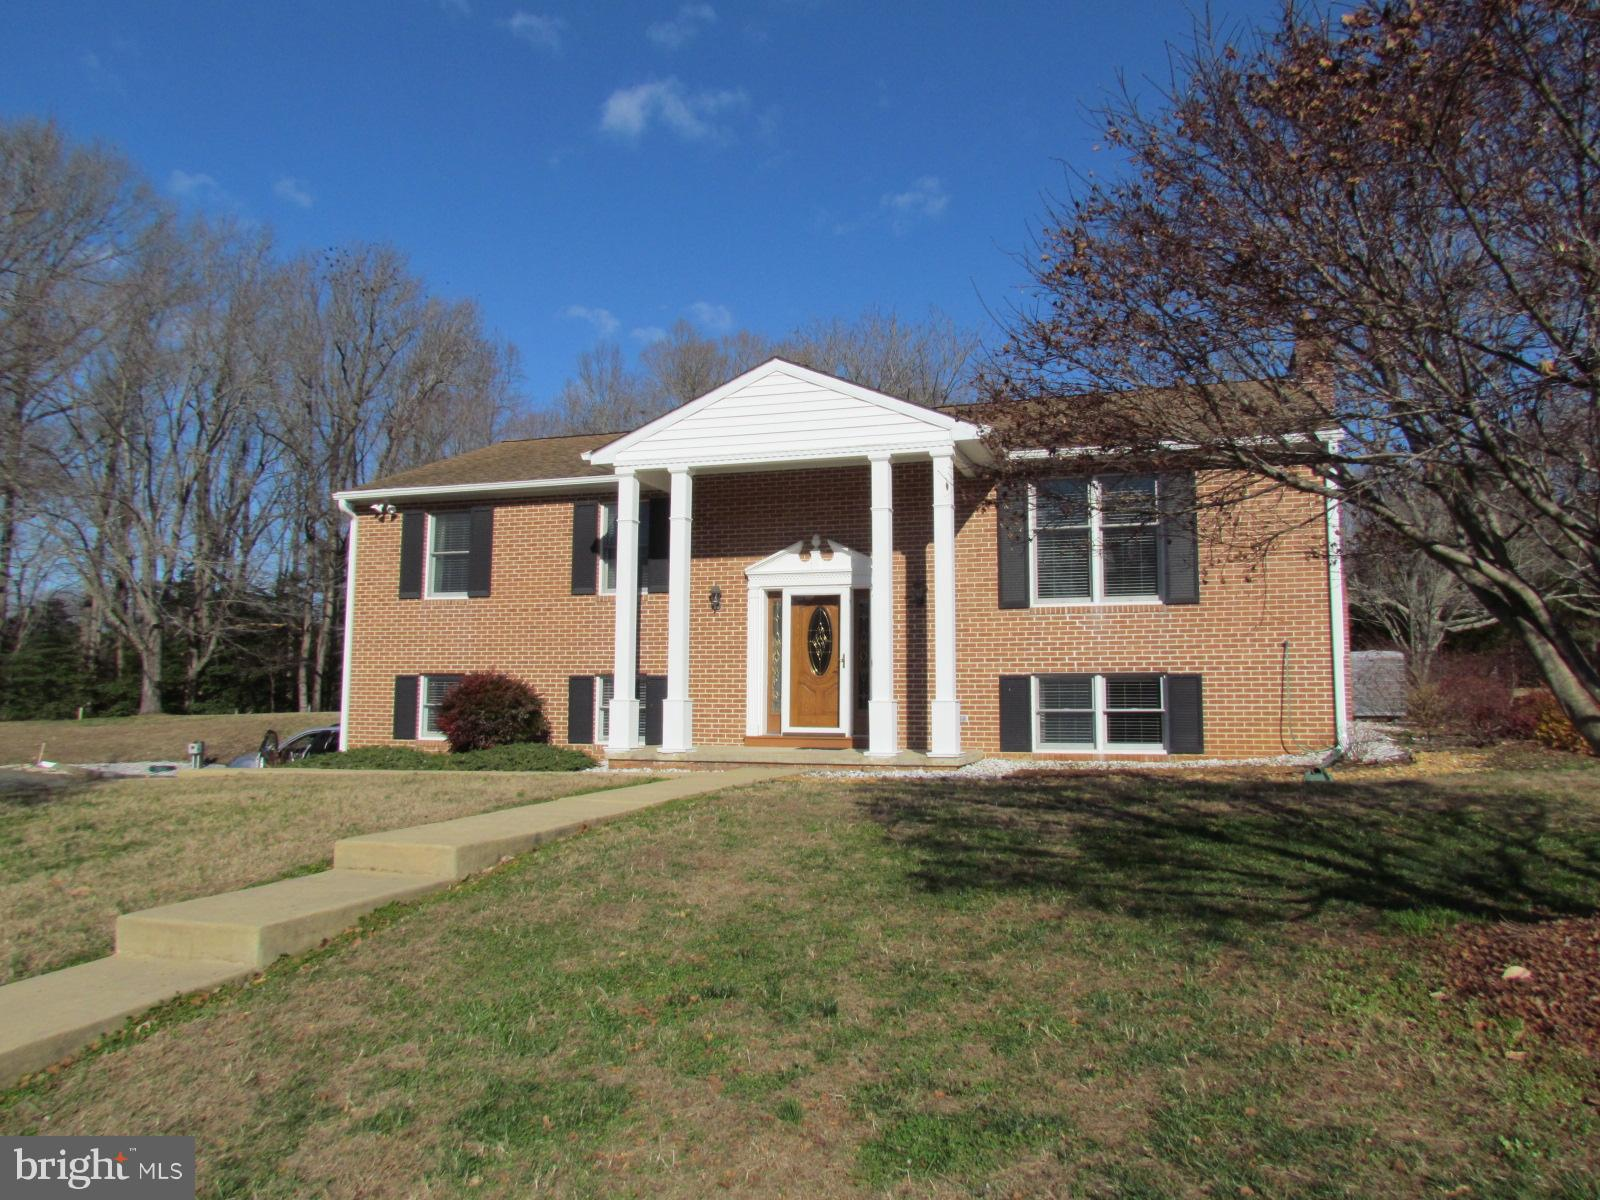 19087 POPLAR HILL LANE, VALLEY LEE, MD 20692